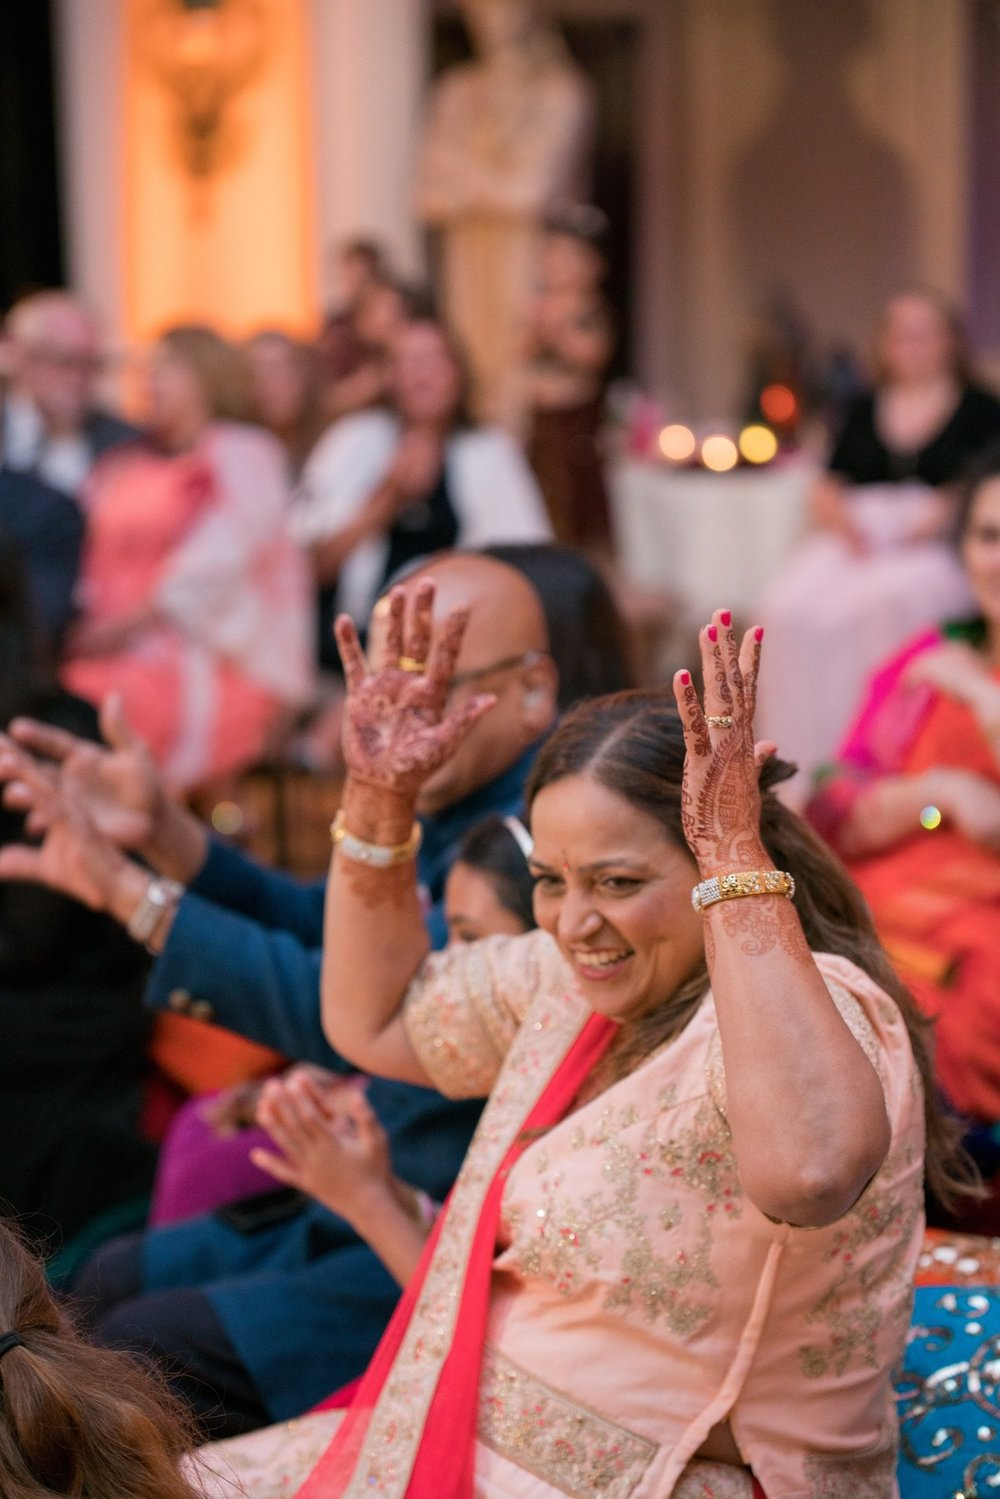 Le Cape Weddings - South Asian Wedding - Trisha and Jordan - Sangeet -50.jpg